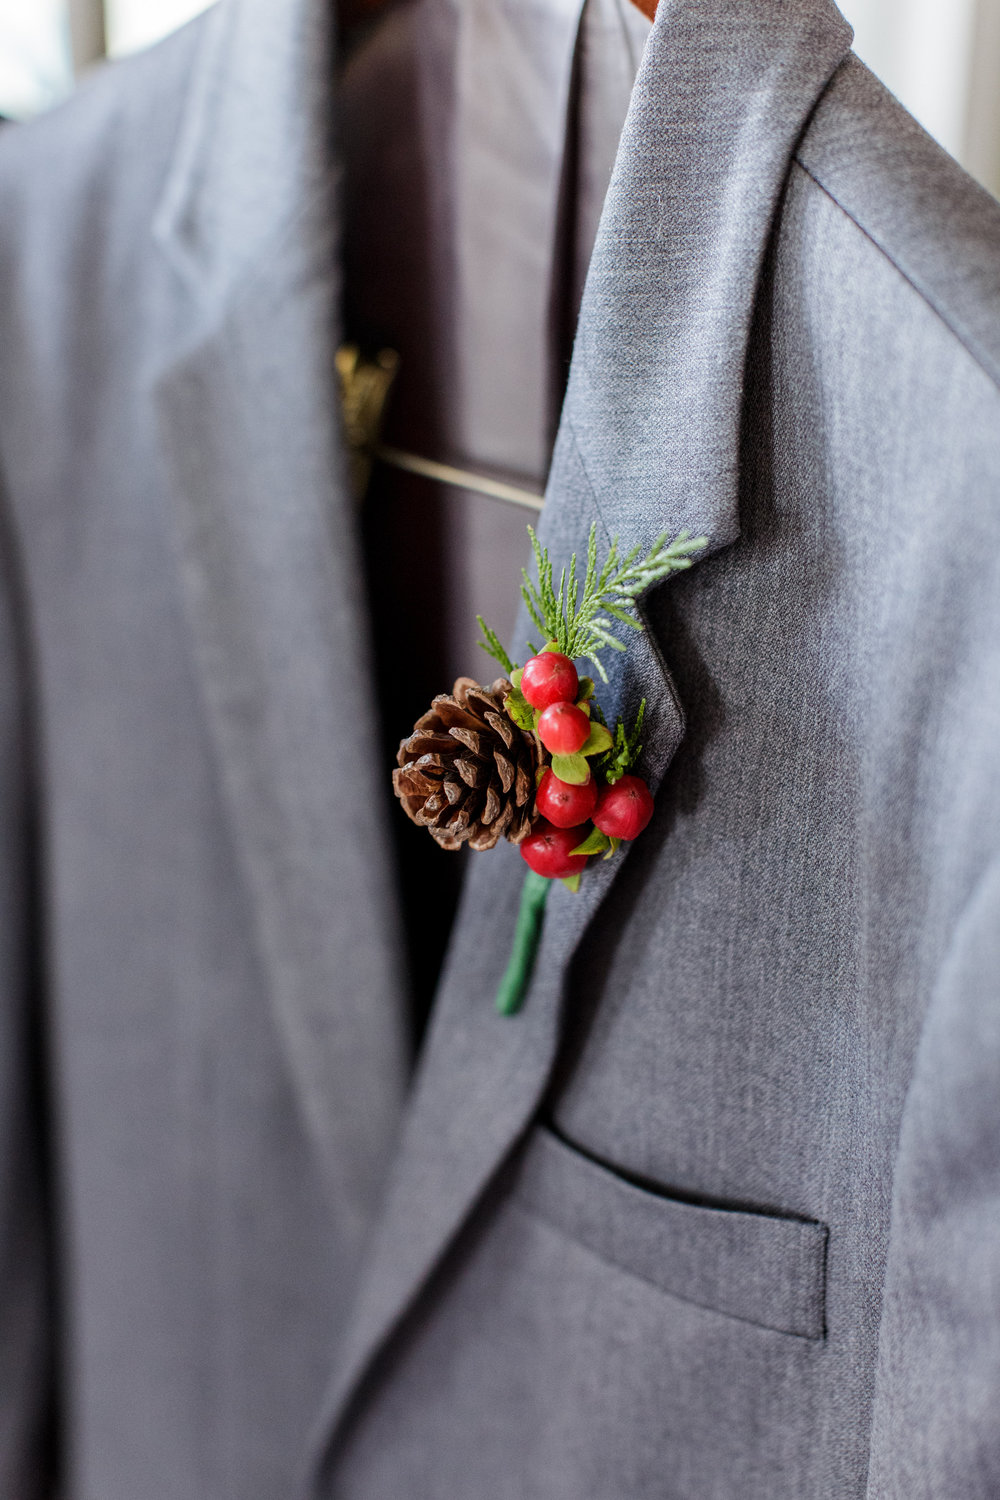 Bluegrass Chic - Bumby Photography - Pinecone boutonniere